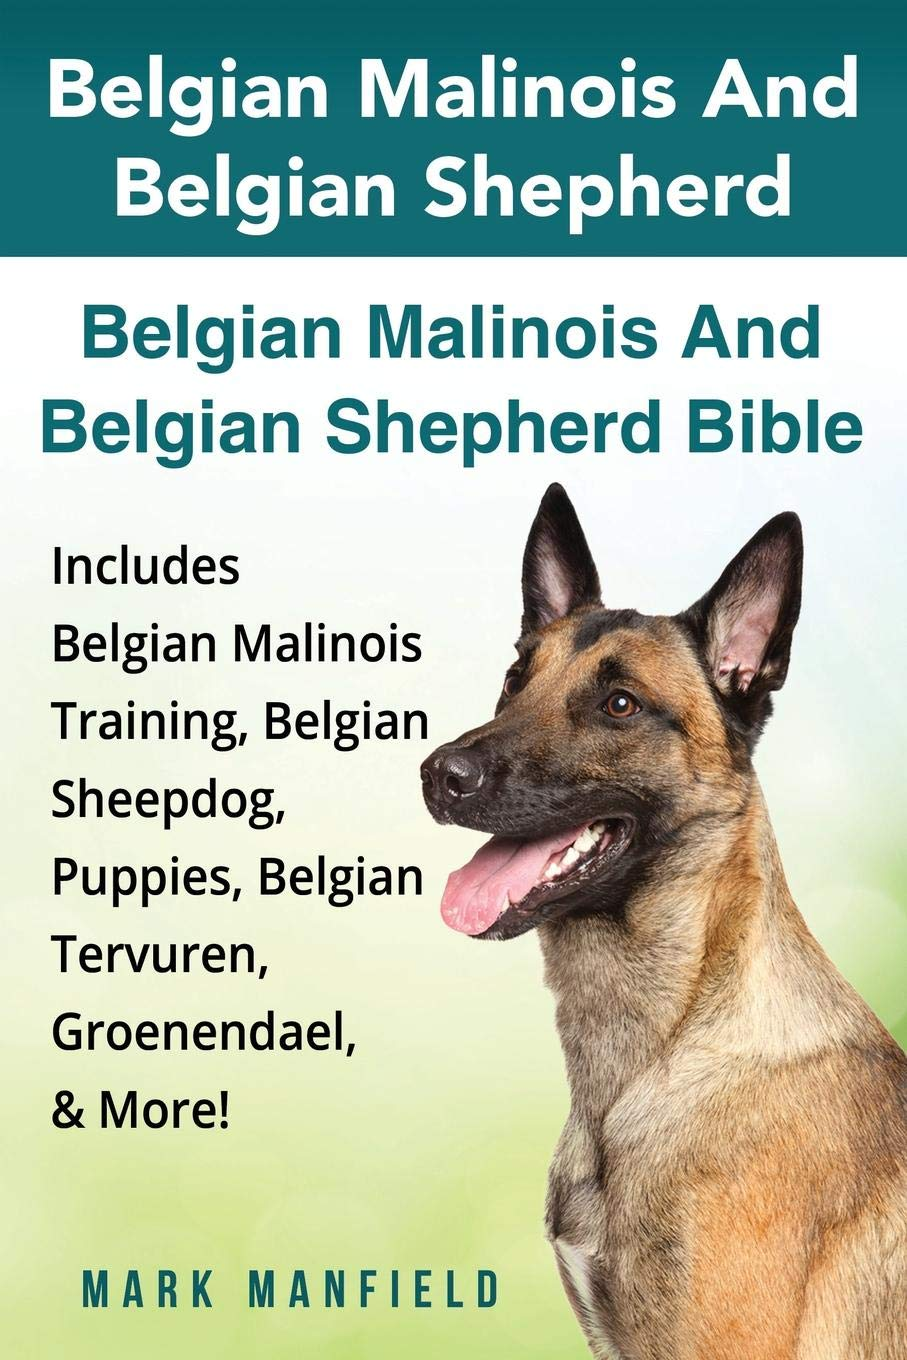 Belgian Malinois And Belgian Shepherd: Belgian Malinois And Belgian Shepherd Bible  Includes Belgian Malinois Training, Belgian Sheepdog, Puppies, Belgian Tervuren, Groenendael, & More!